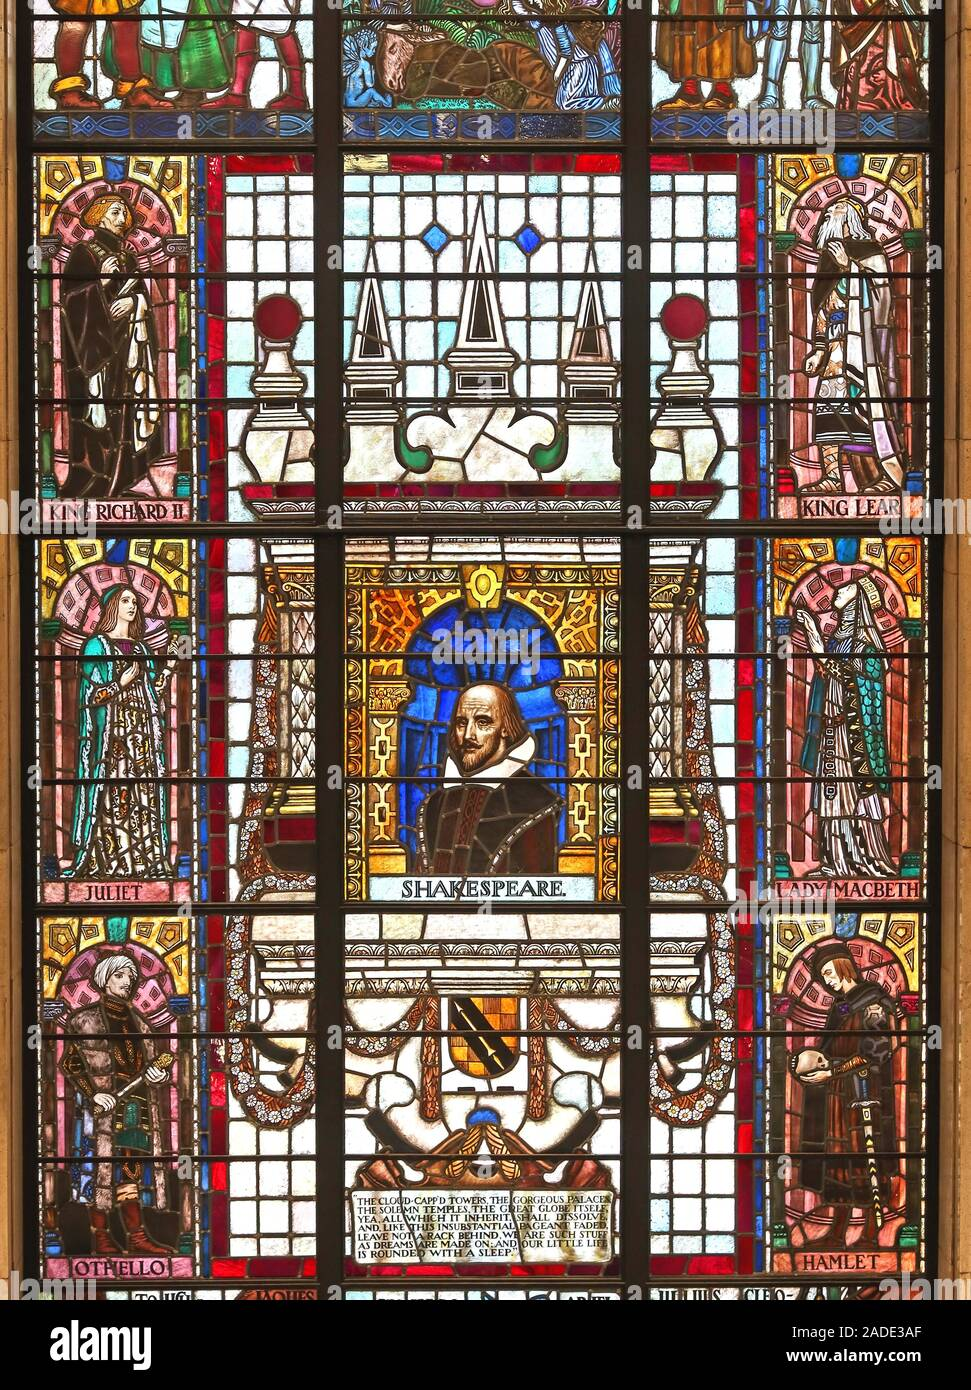 Manchester Central library,Shakespeare plays Stained Glass Windows,City Centre,North west England,UK Stock Photo